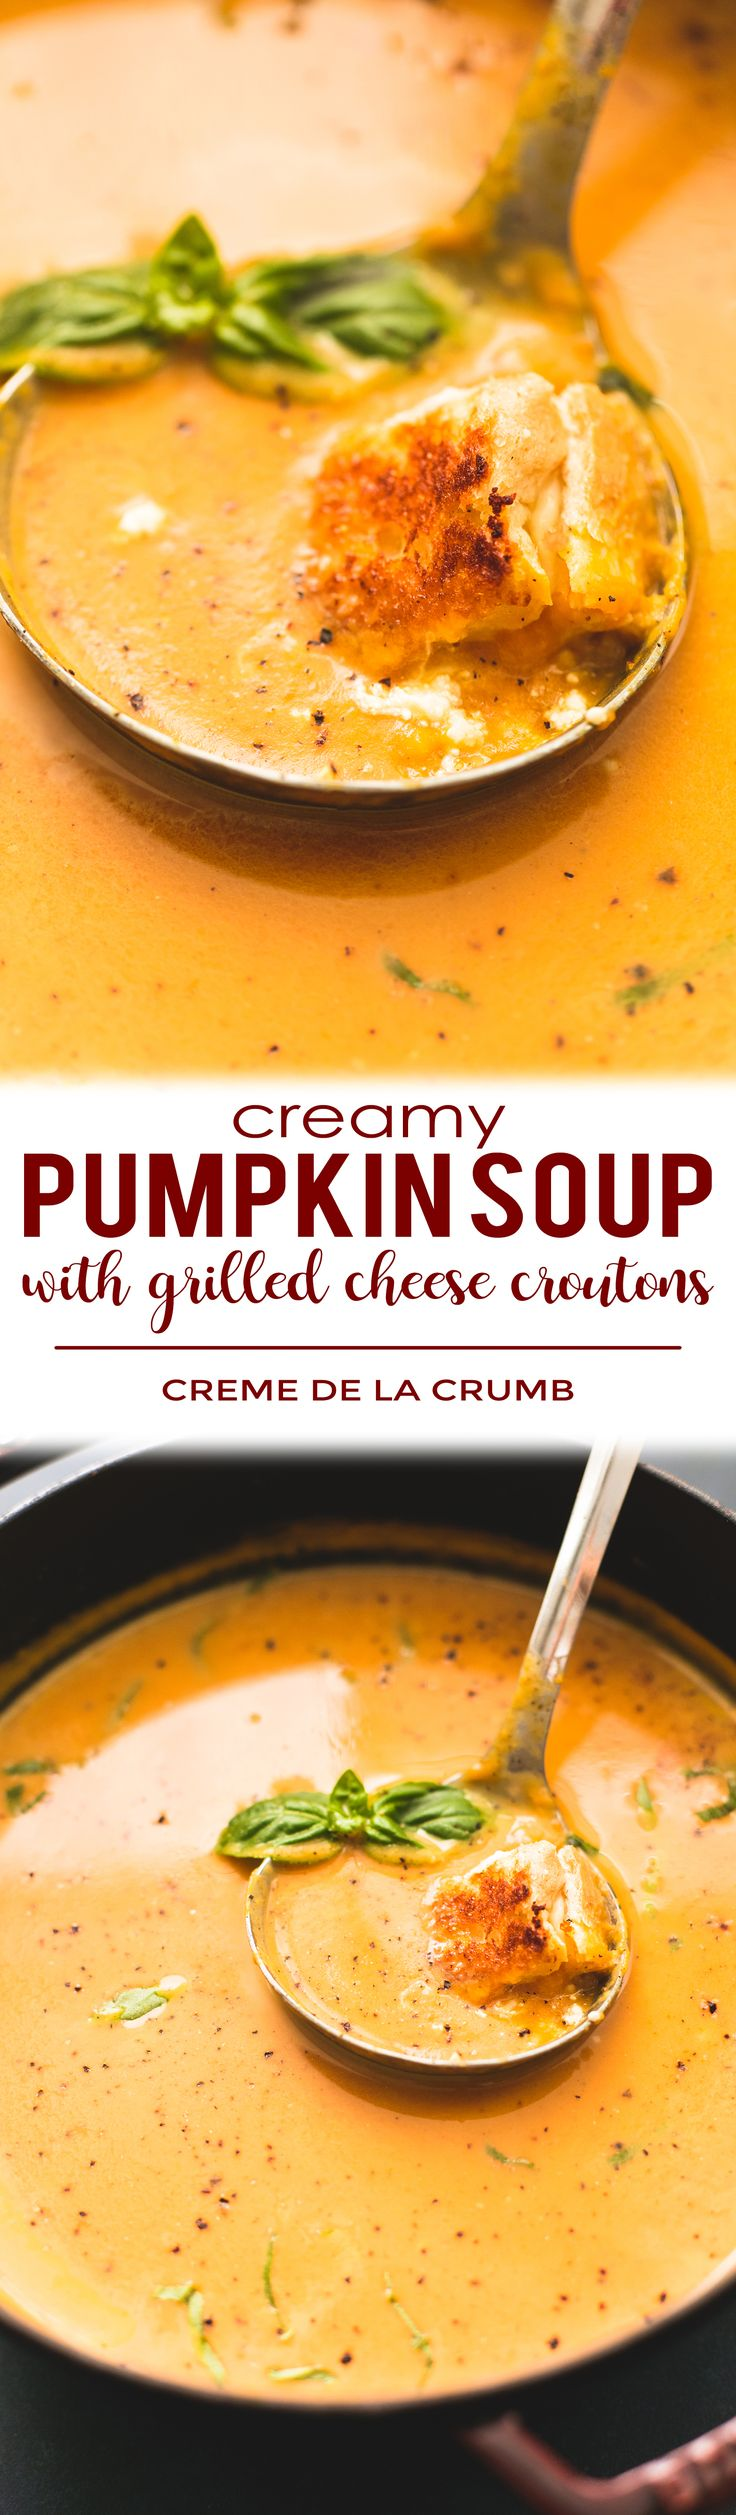 Creamy Pumpkin Soup with Grilled Cheese Croutons will leave you craving more all season long | lecremedelacrumb.com